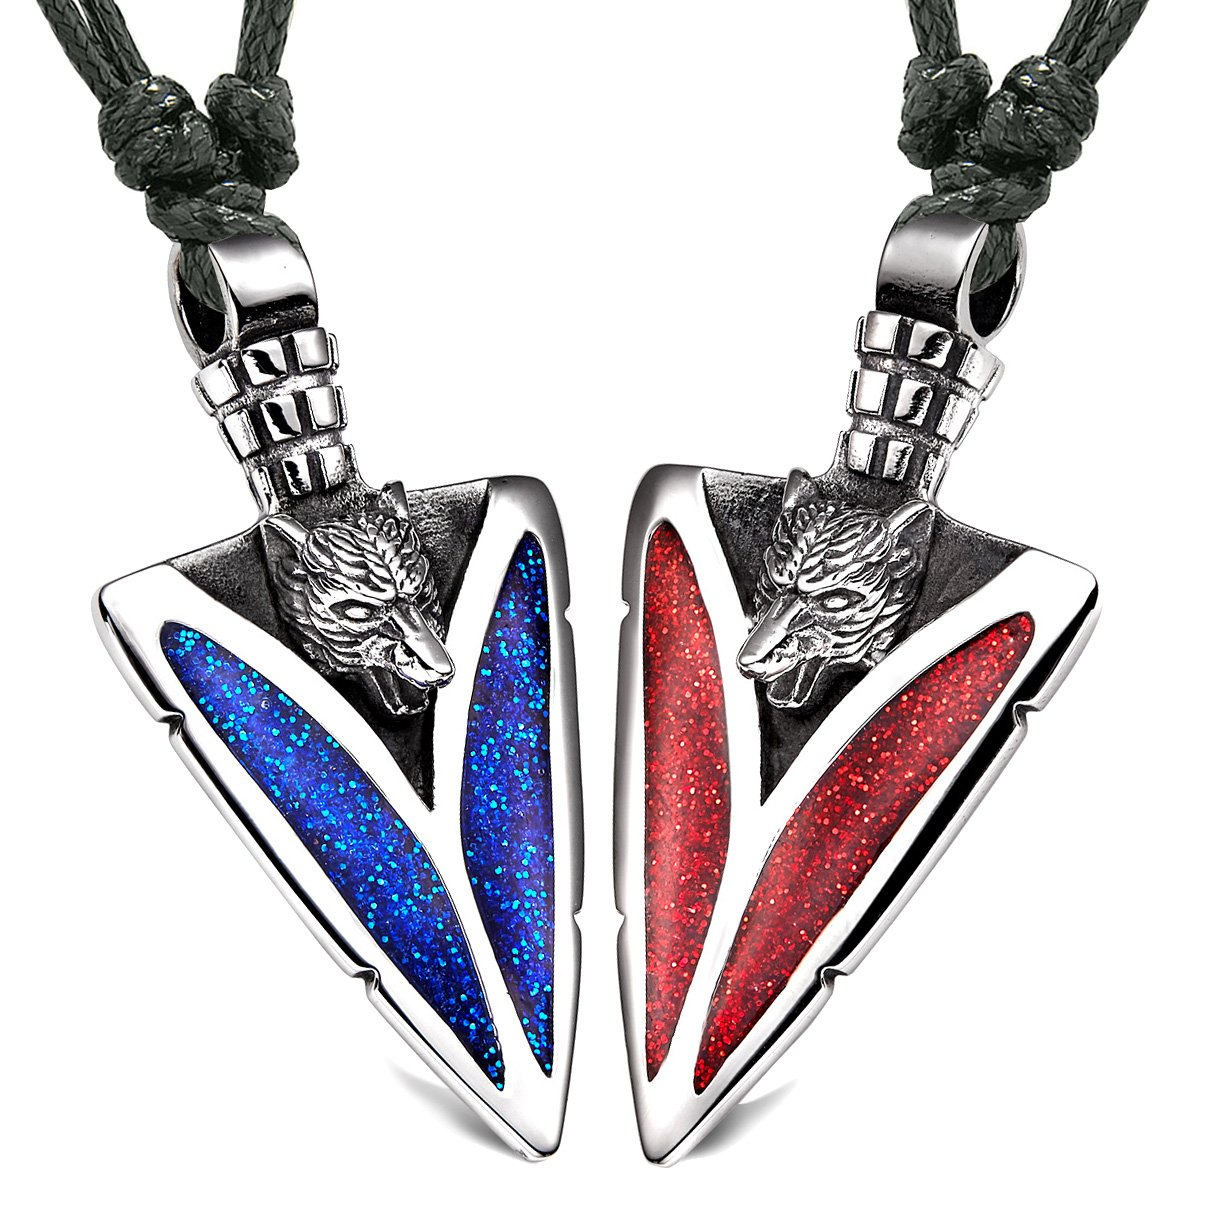 Arrowhead Howling Wolf Love Couples or BFF Set Amulets Sparkling Royal Blue Red Adjustable Necklaces